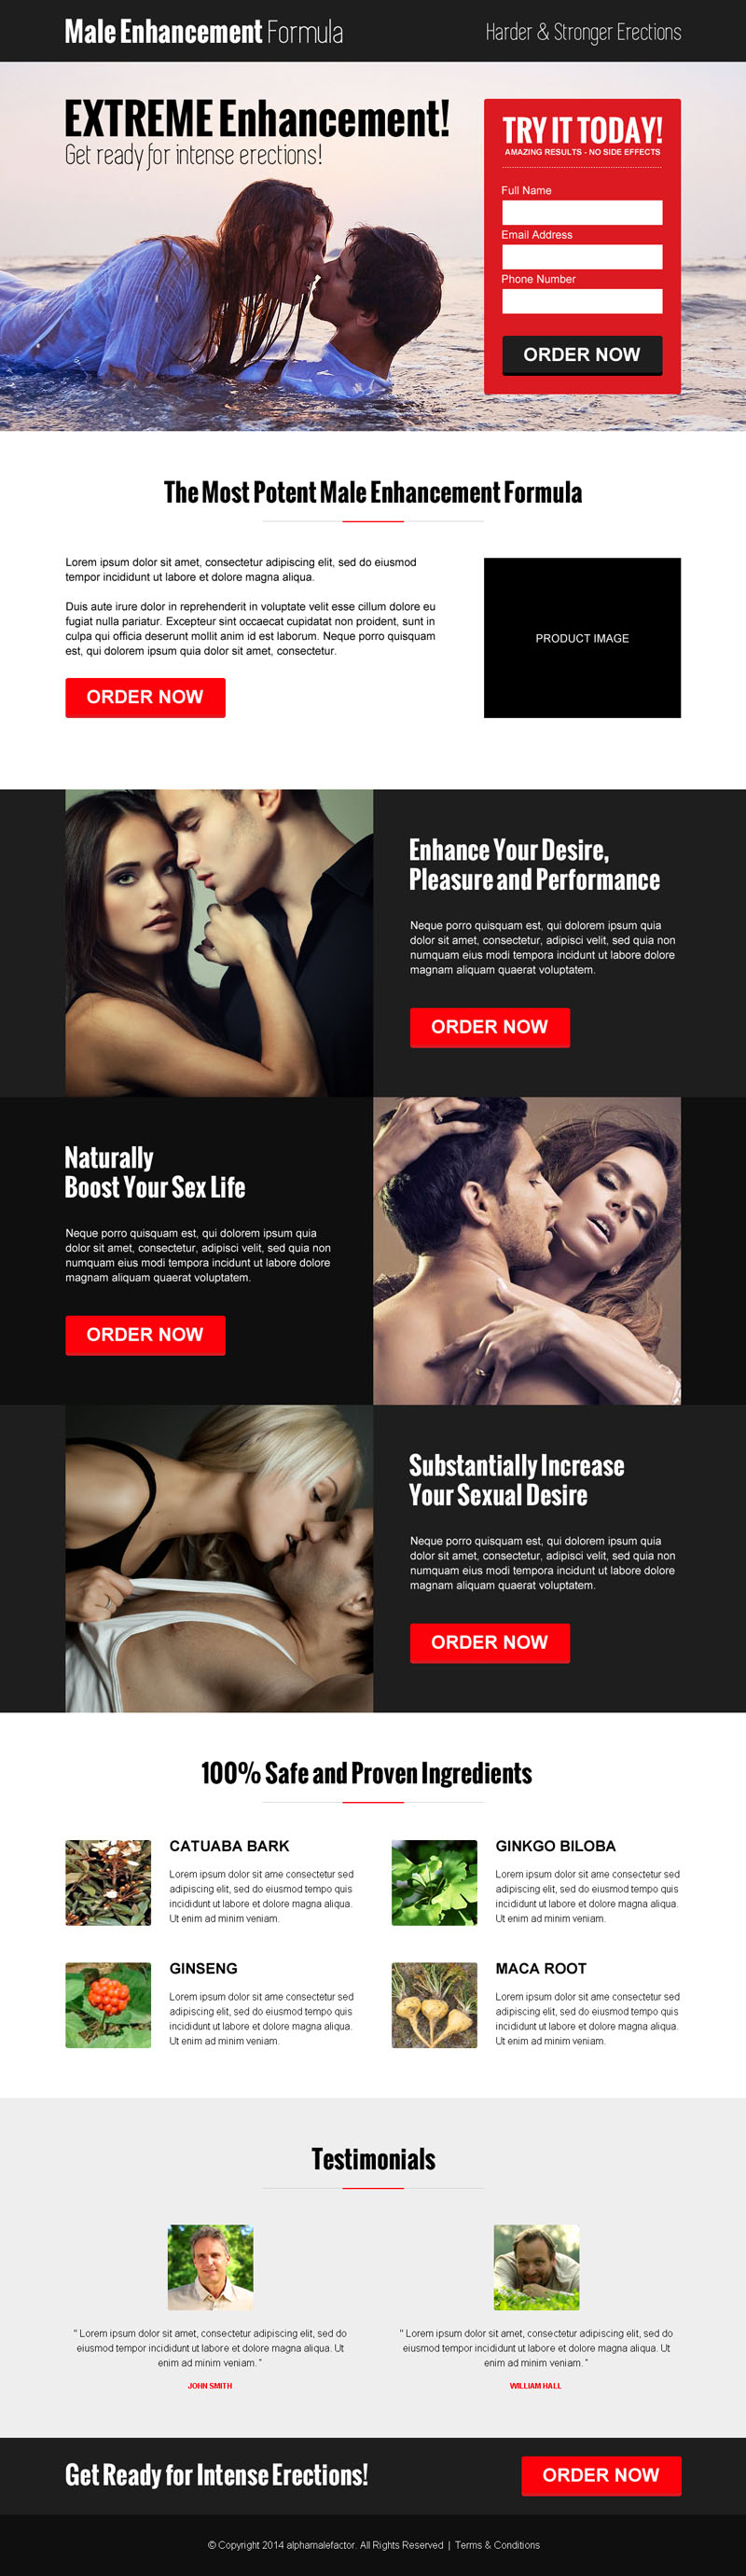 lead-capture-male-enhancement-formula-product-selling-responsive-landing-page-design-template-007